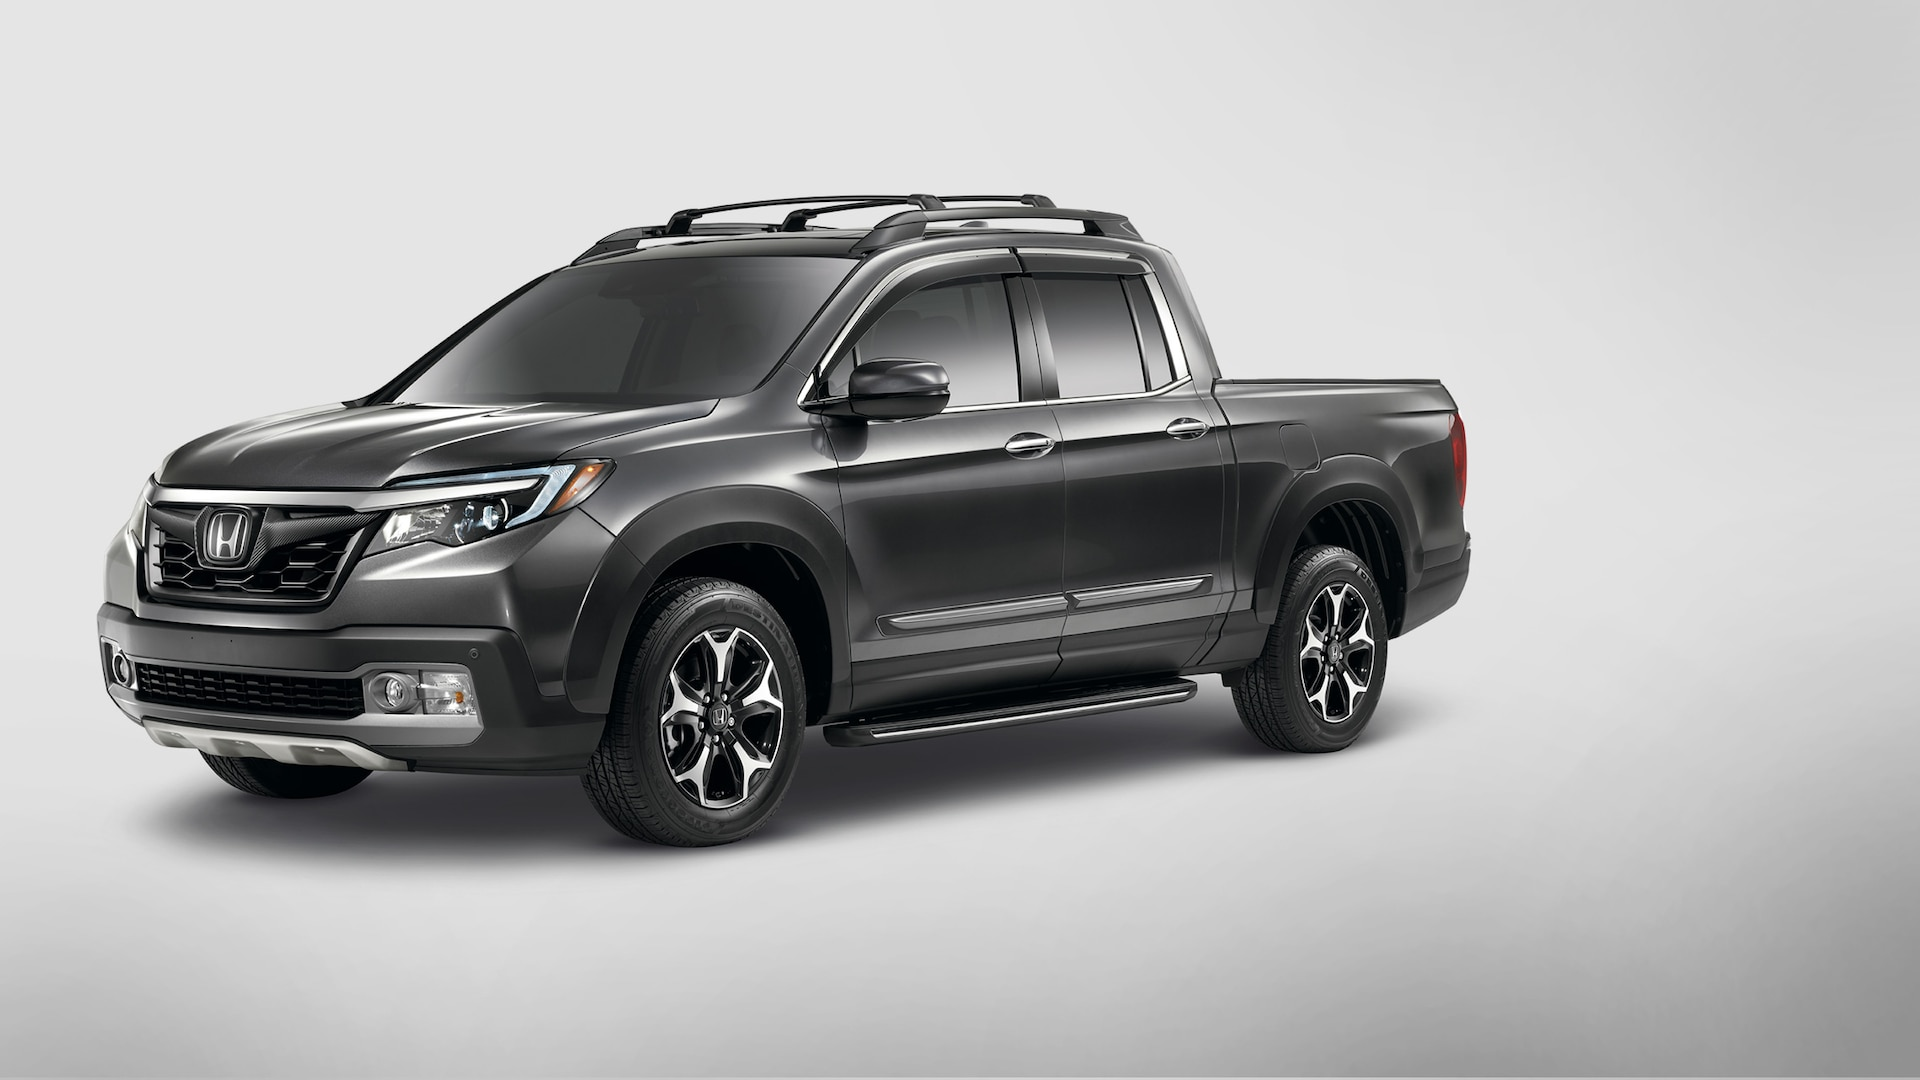 Roof rails with crossbars detail on the 2020 Honda Ridgeline RTL-E in Modern Steel Metallic.